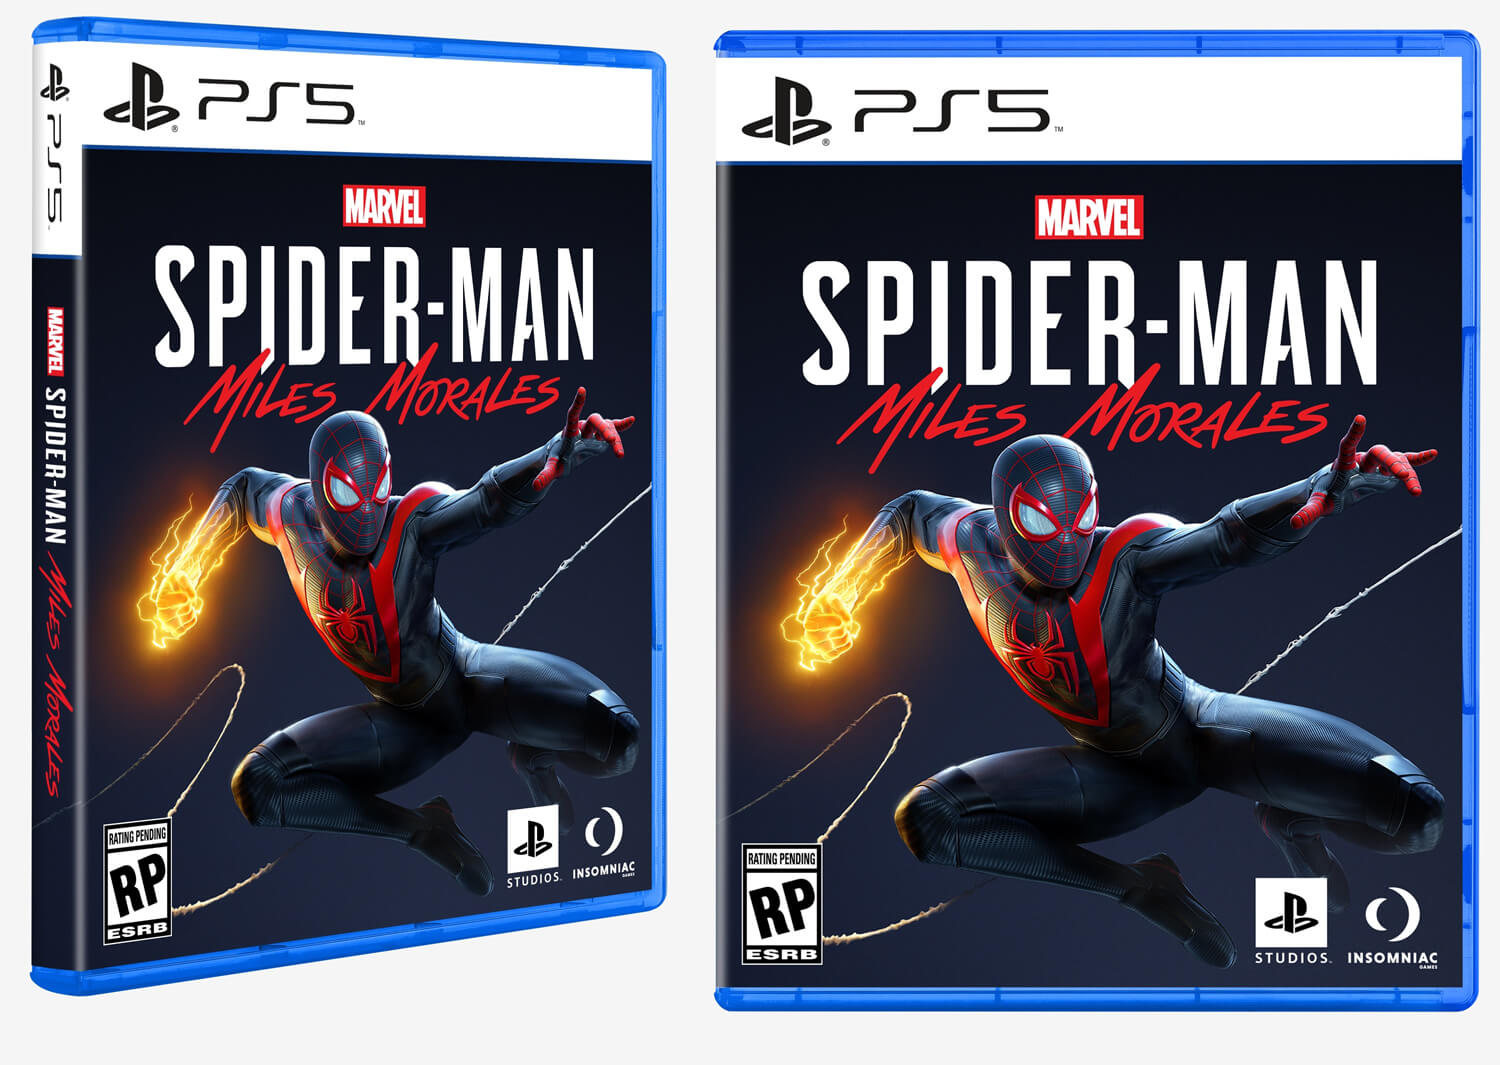 Sony shares first look at PlayStation 5 box art